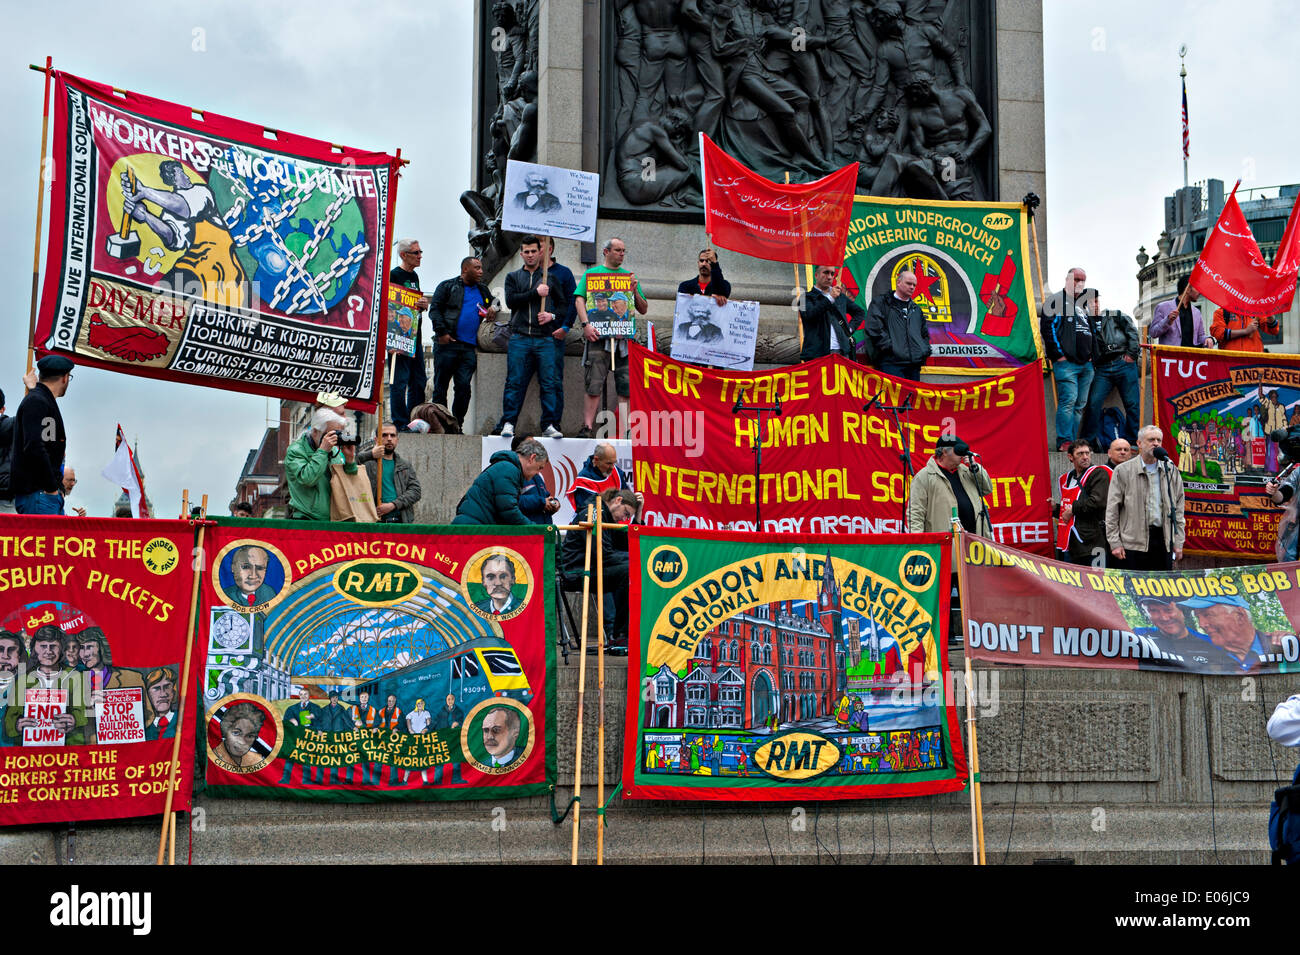 Trade union banners seen at a Mayday Rally in London - Stock Image